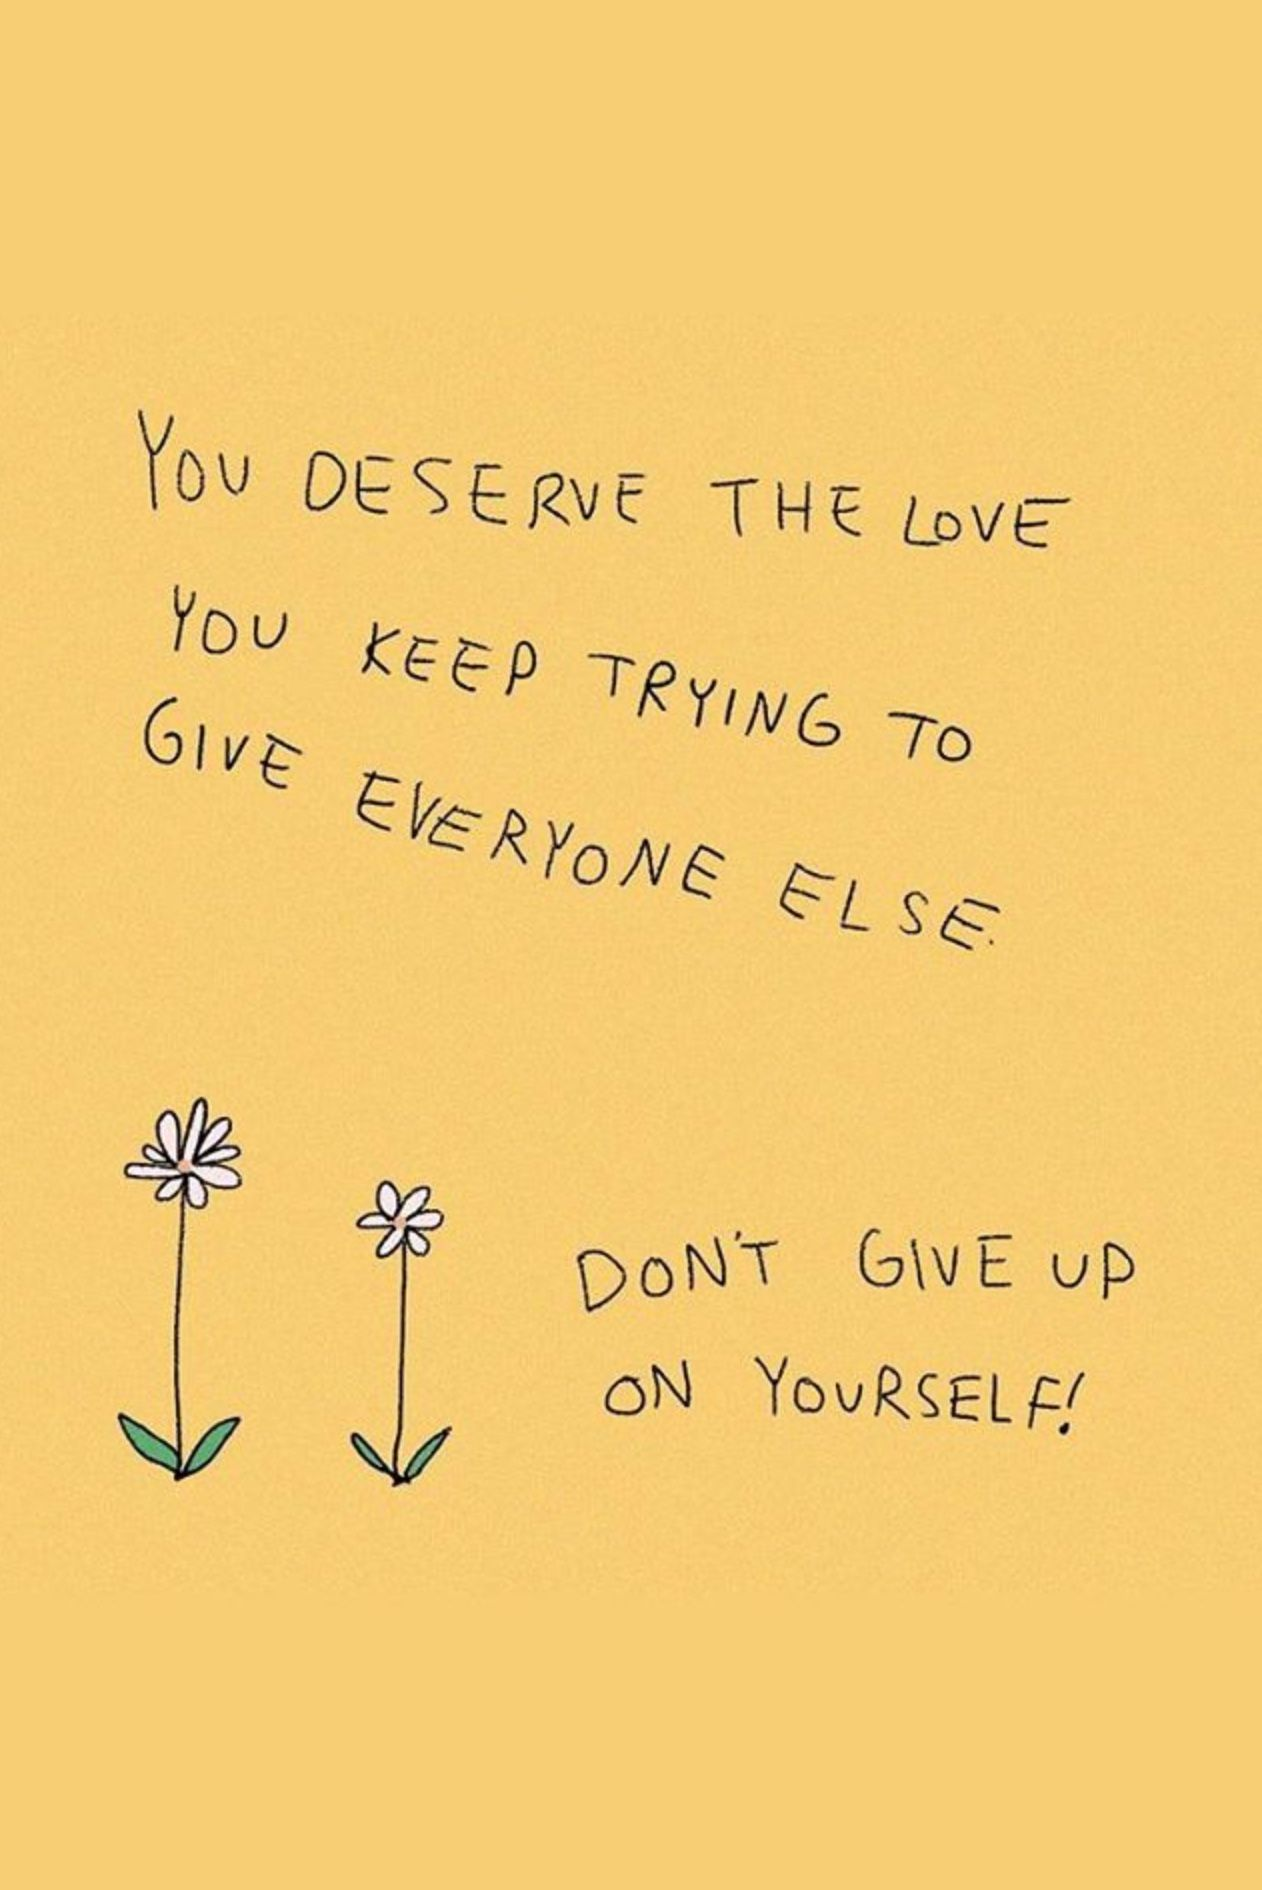 Love Yourself Quotes For Instagram : yourself, quotes, instagram, Yourself, INSTAGRAM:, @achannwol, Positive, Quotes,, Words